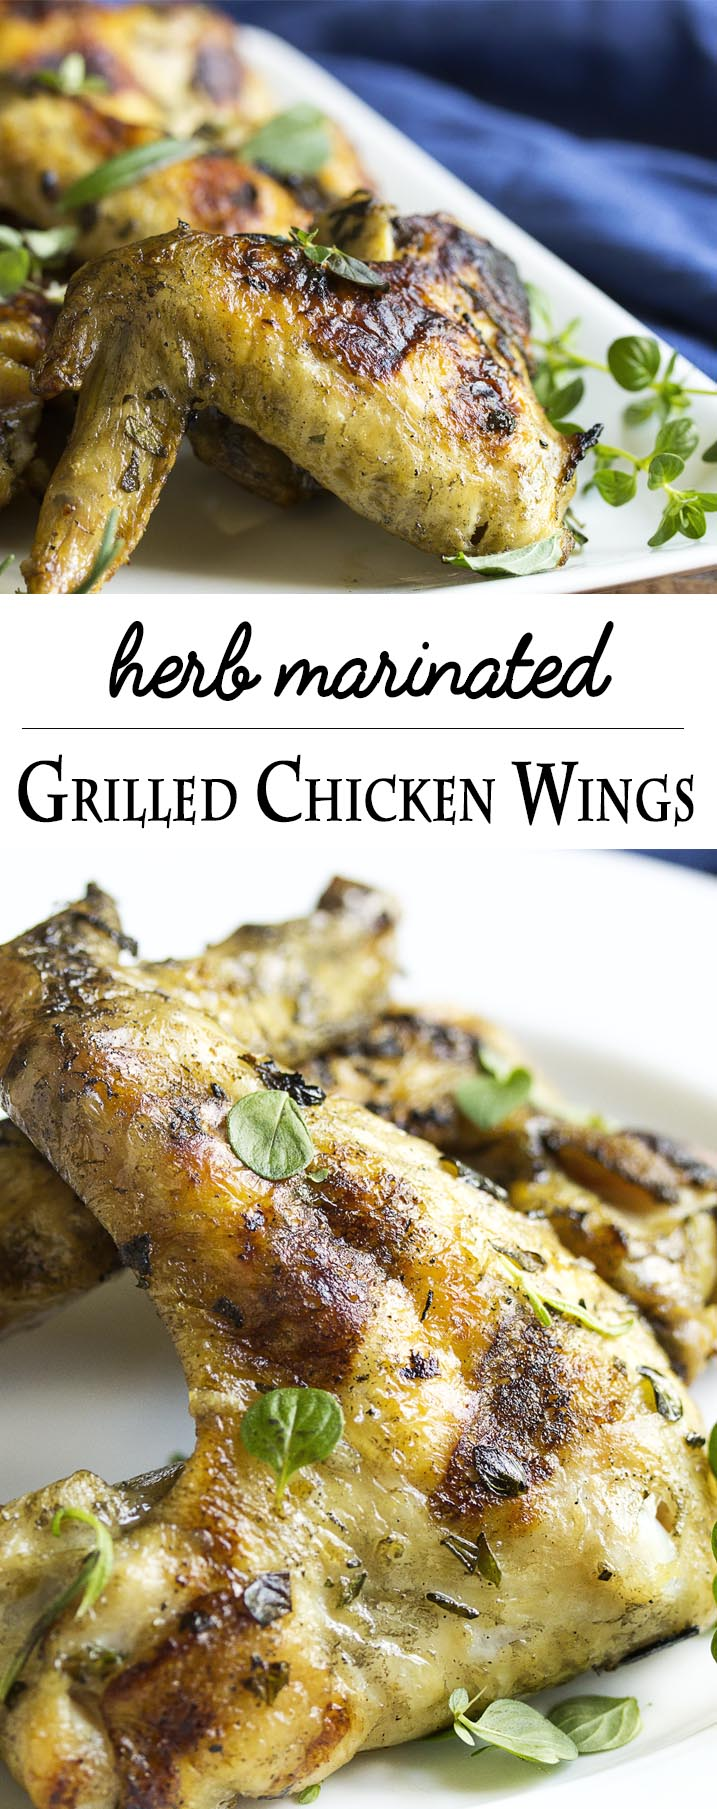 Herb Marinated Grilled Chicken Wings - Grilled chicken wings take on Italian flavors when they are marinated in fresh herbs and lemon and then grilled to crispy perfection. Great for cookouts! | justalittlebitofbacon.com